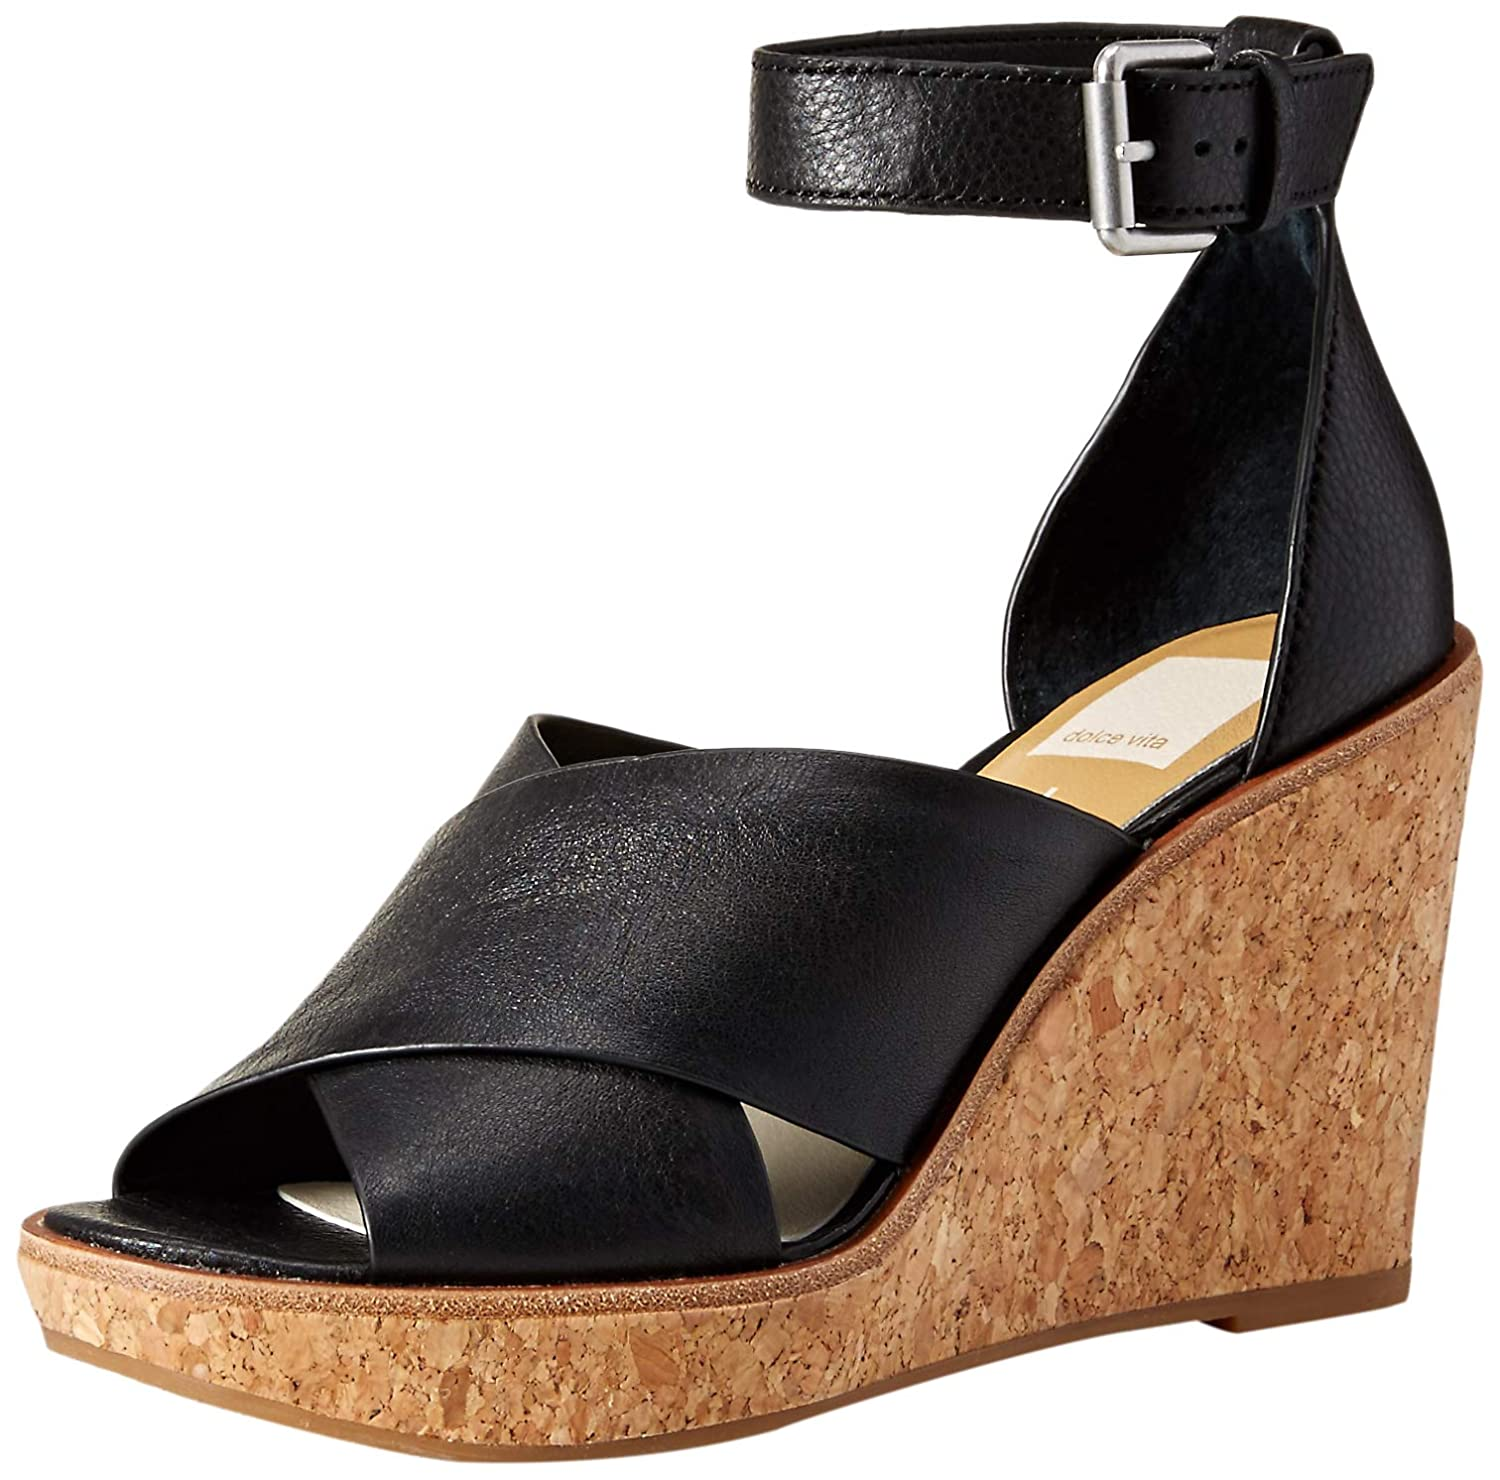 d49cc111140 Amazon.com  Dolce Vita Women s Urbane Wedge Sandal  Shoes